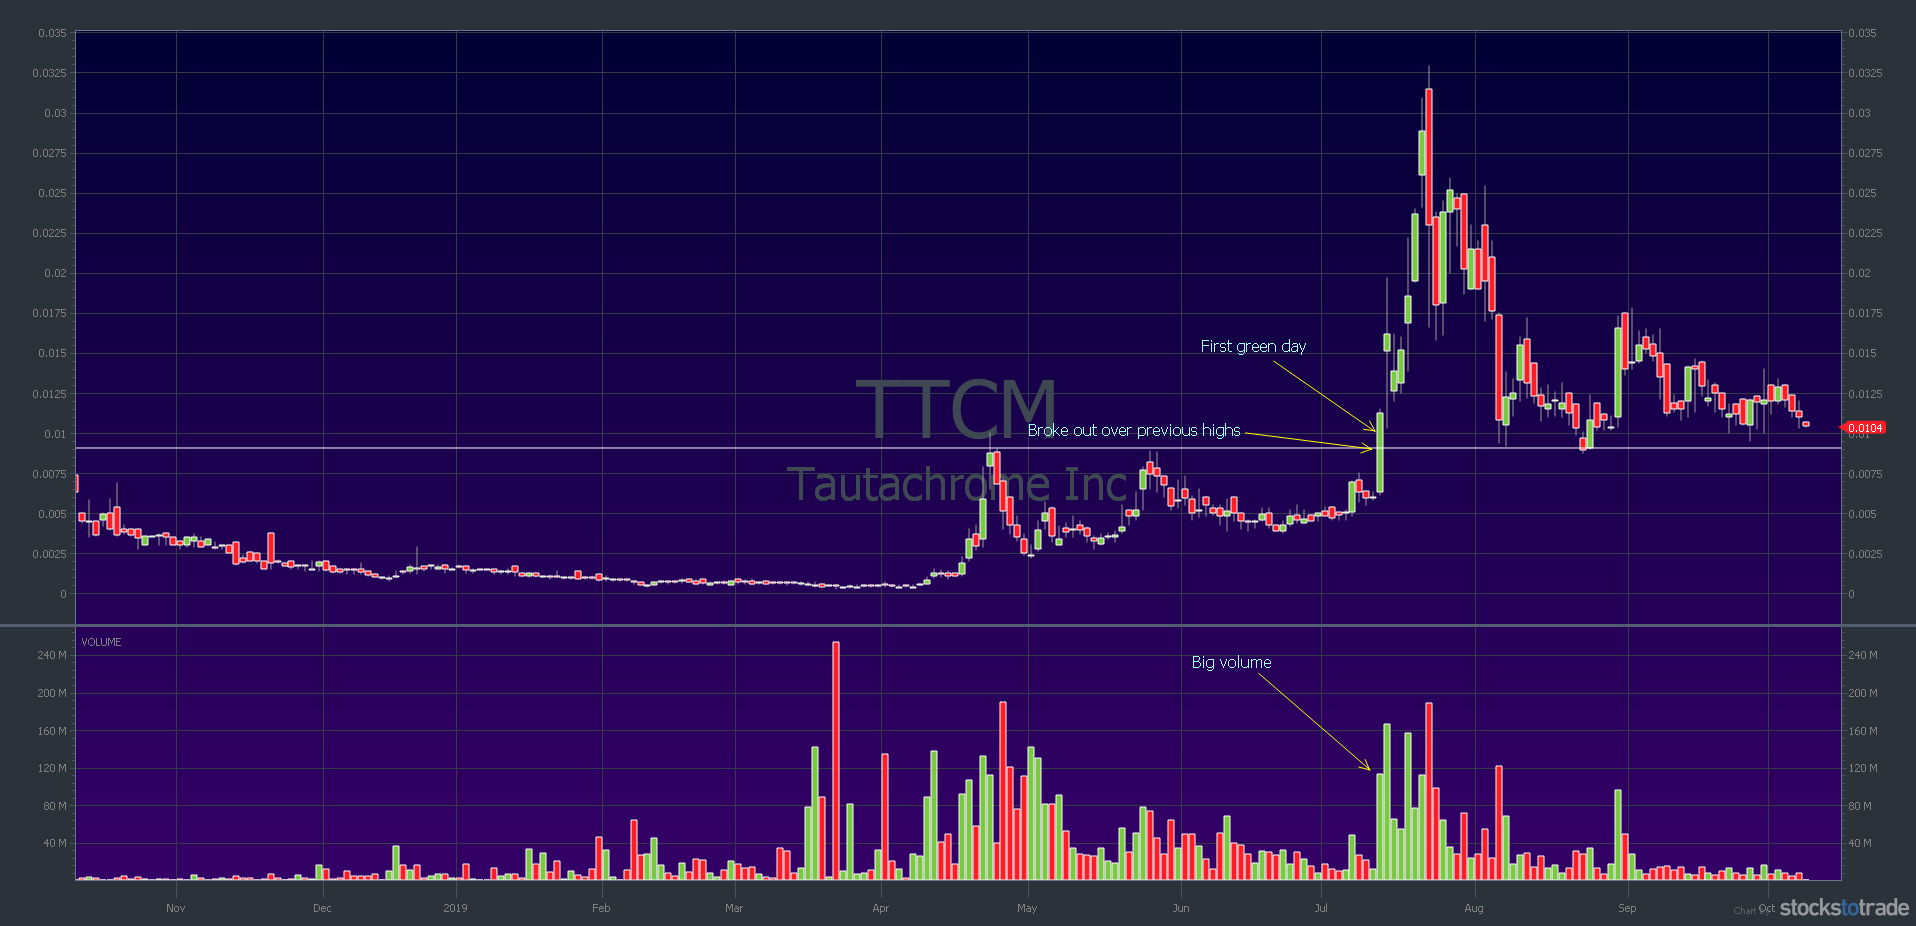 TTCM 1-year chart: first green day, big volume, and breakout over previous highs — courtesy of StocksToTrade.com